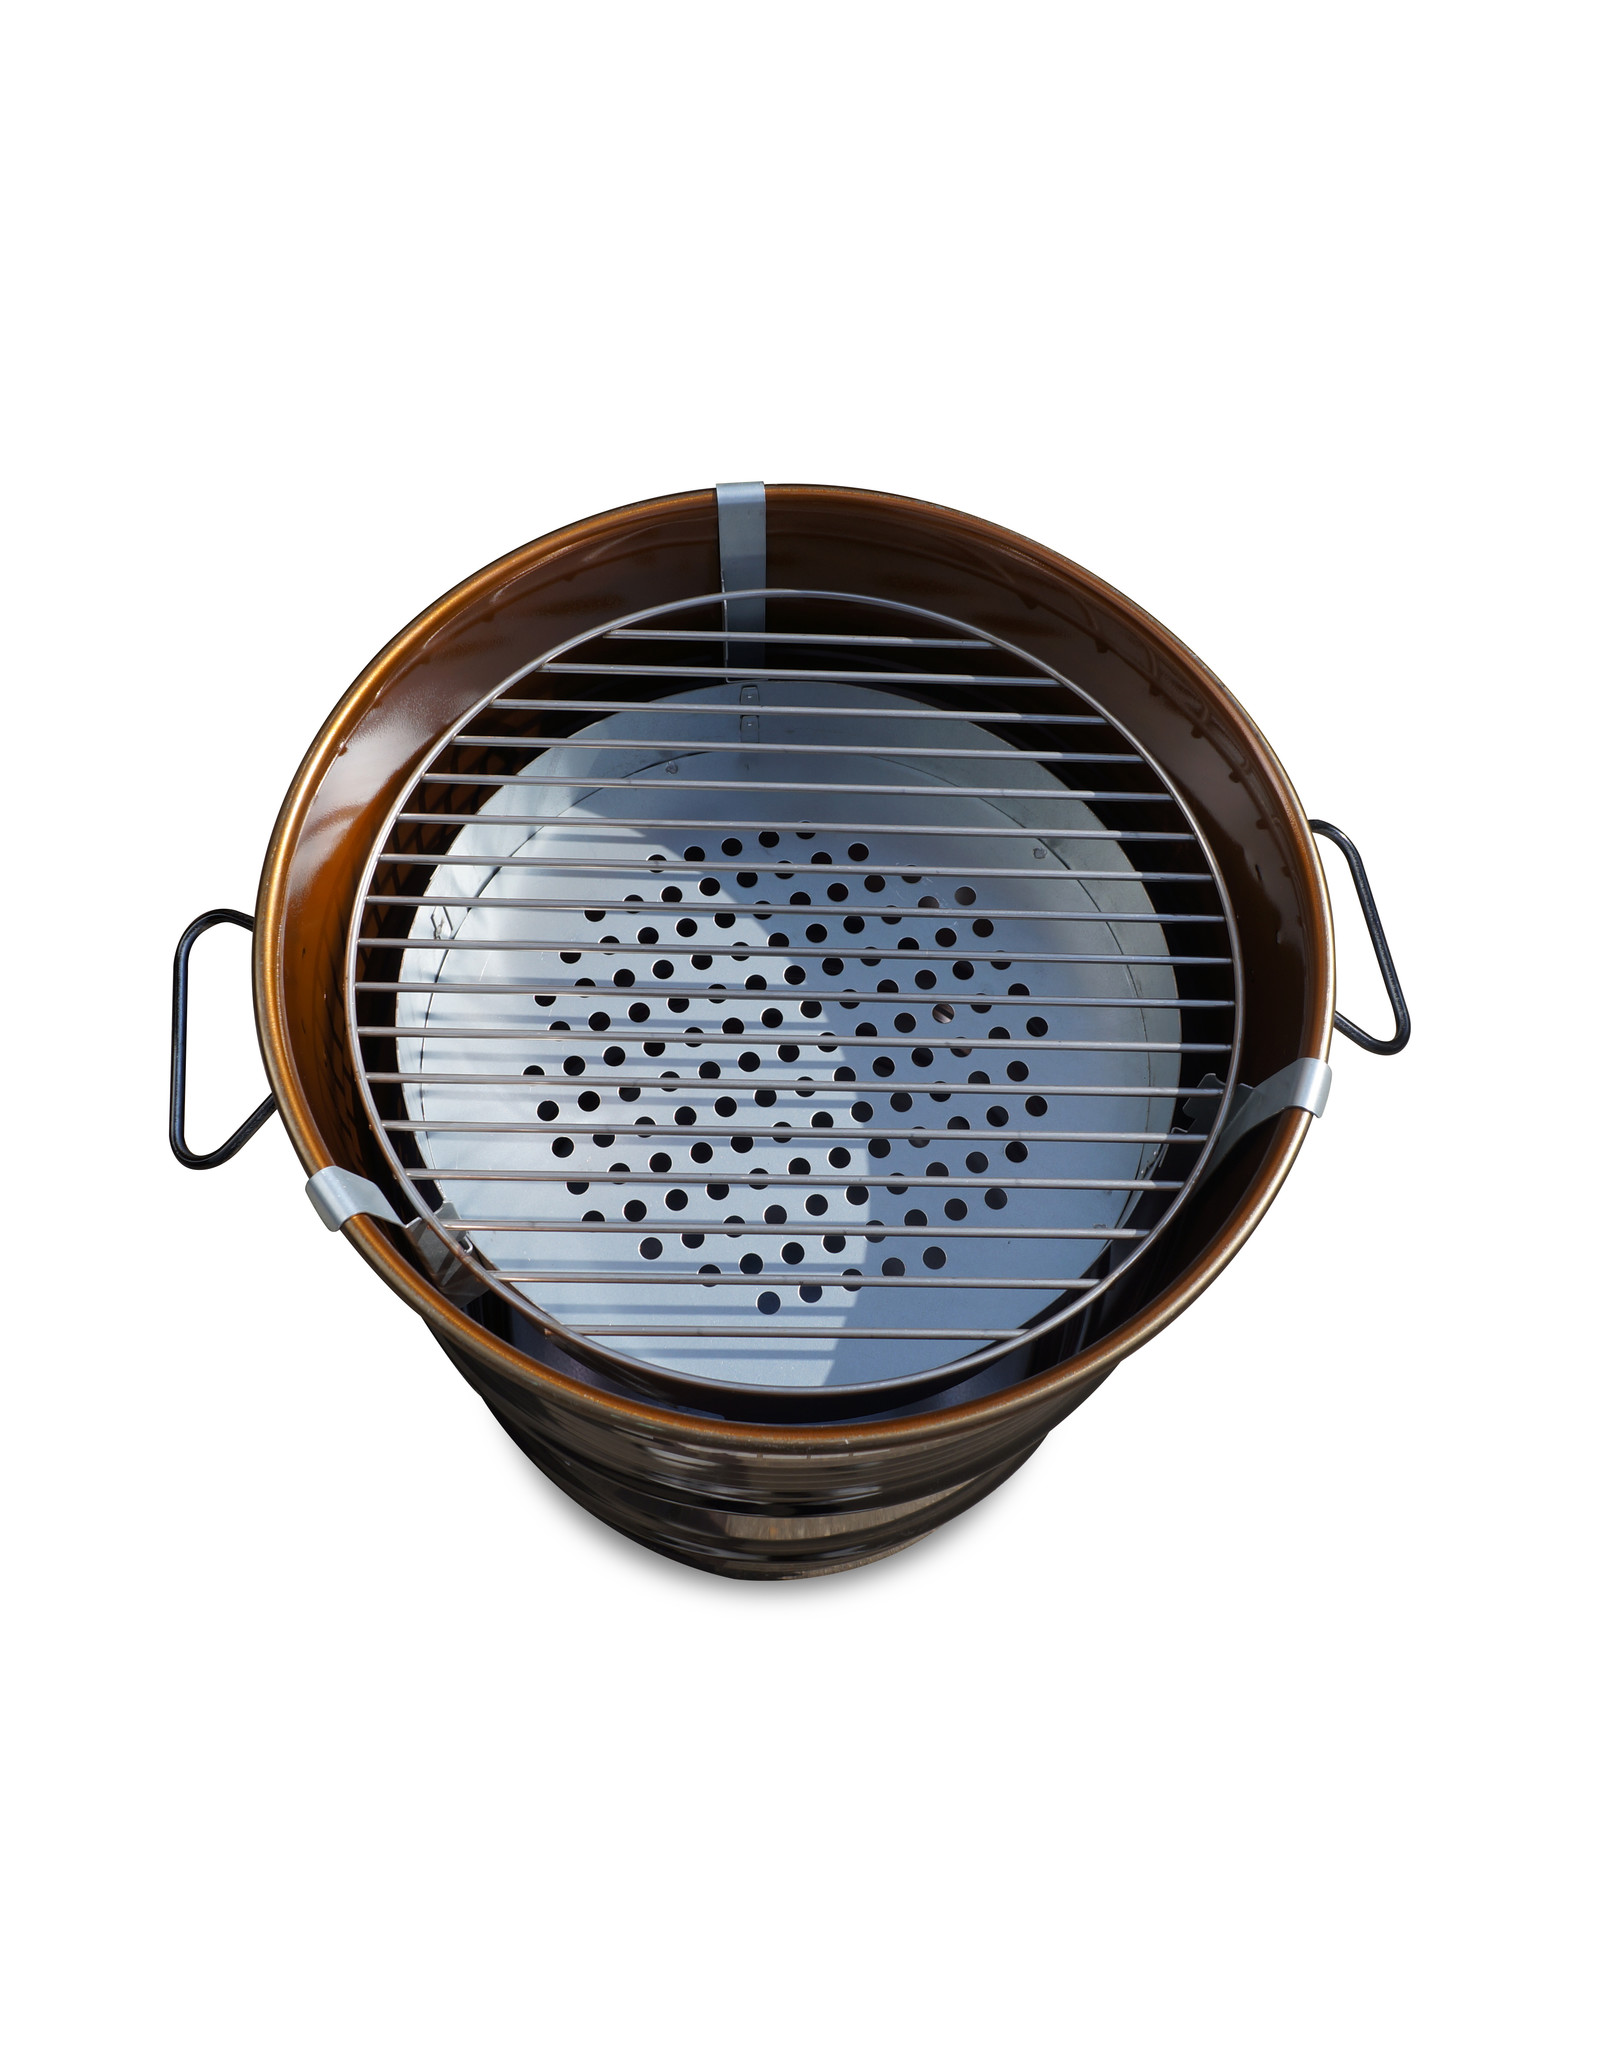 DrumGrill Drumgrill Small 60 Liter Barbecue, firepit and table in one